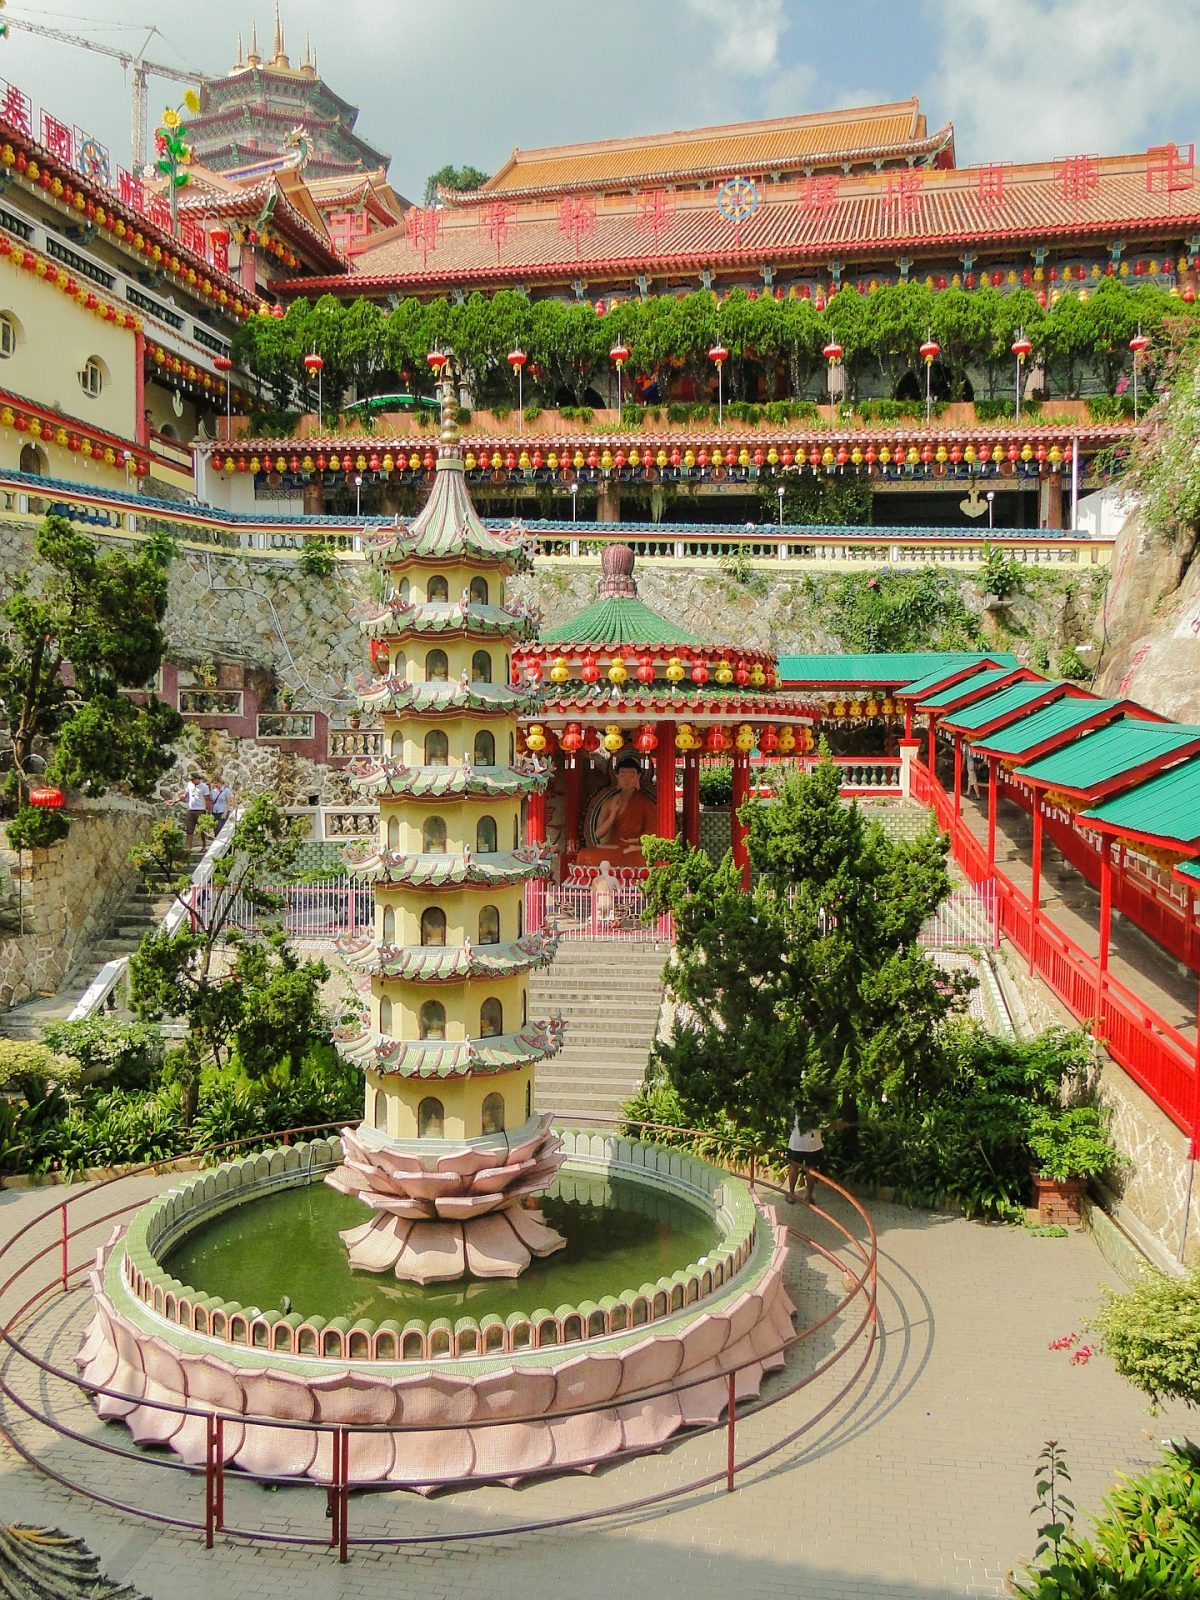 Penang's most recognisable landmark, Ken Lok Si Temple owes its fame to the massive Guanyin statue at its temple grounds